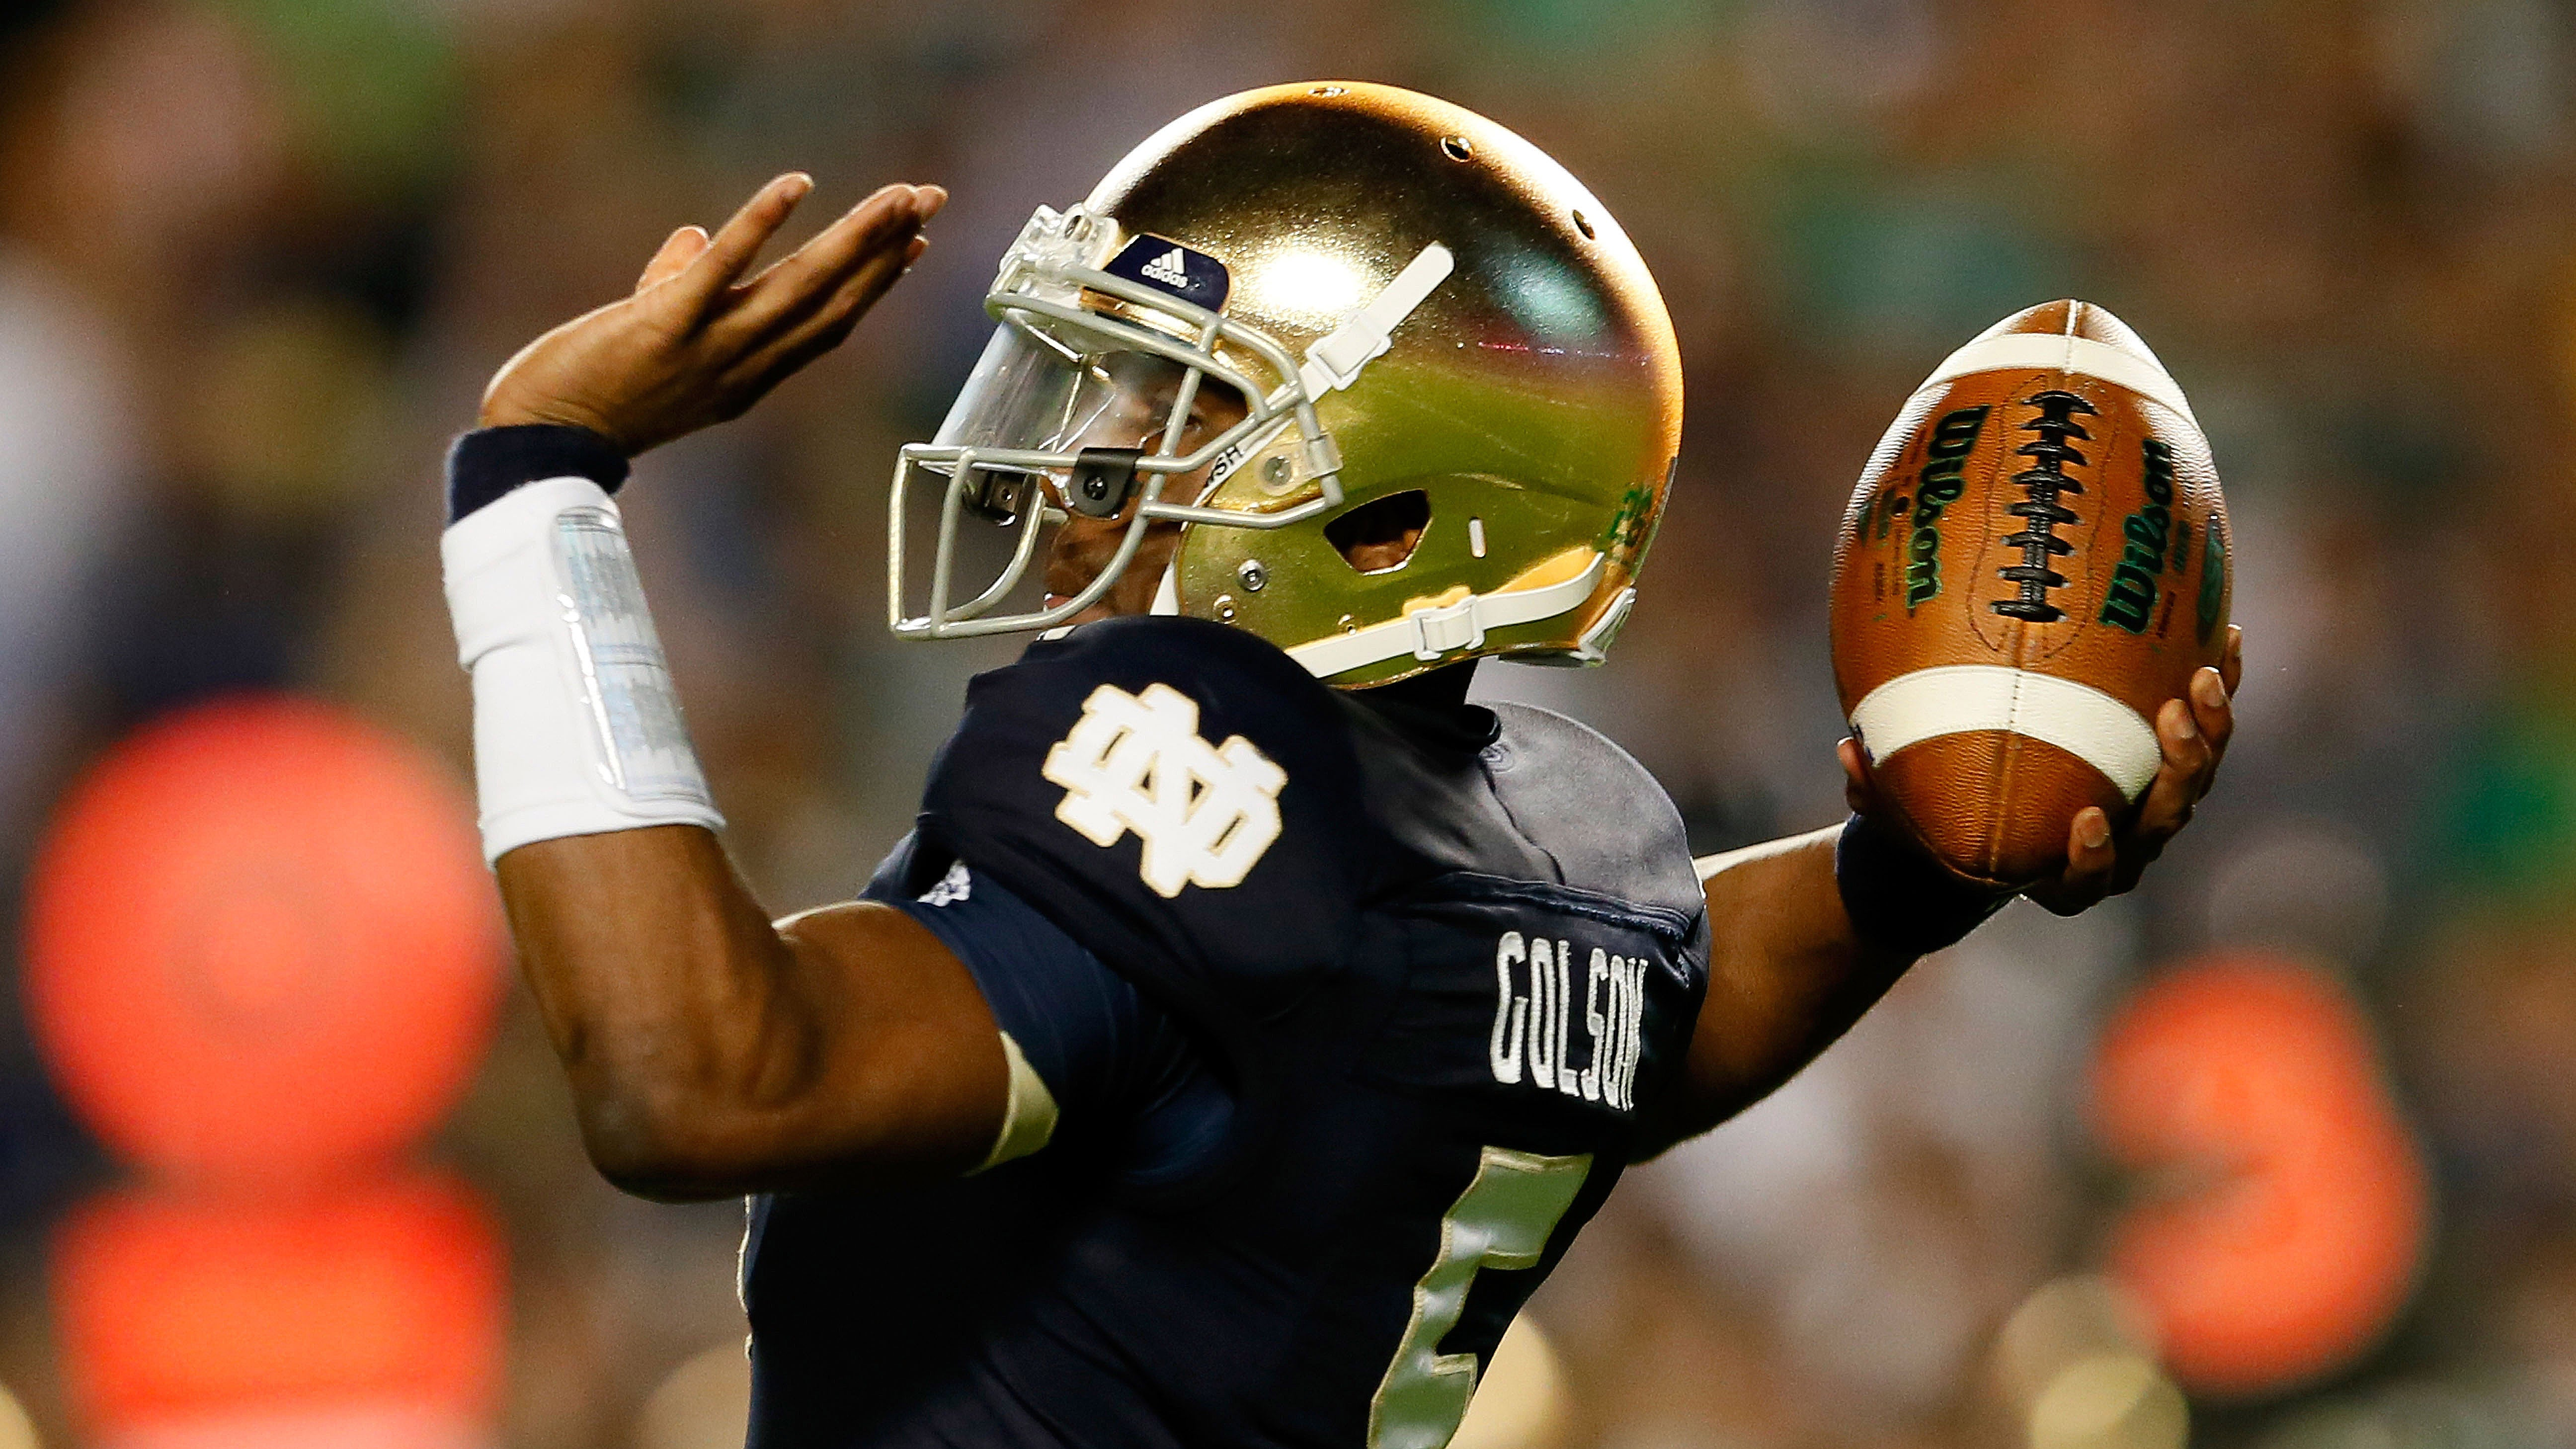 Notre Dame QB Golson Allegedly Kicked Out For Academic Violation